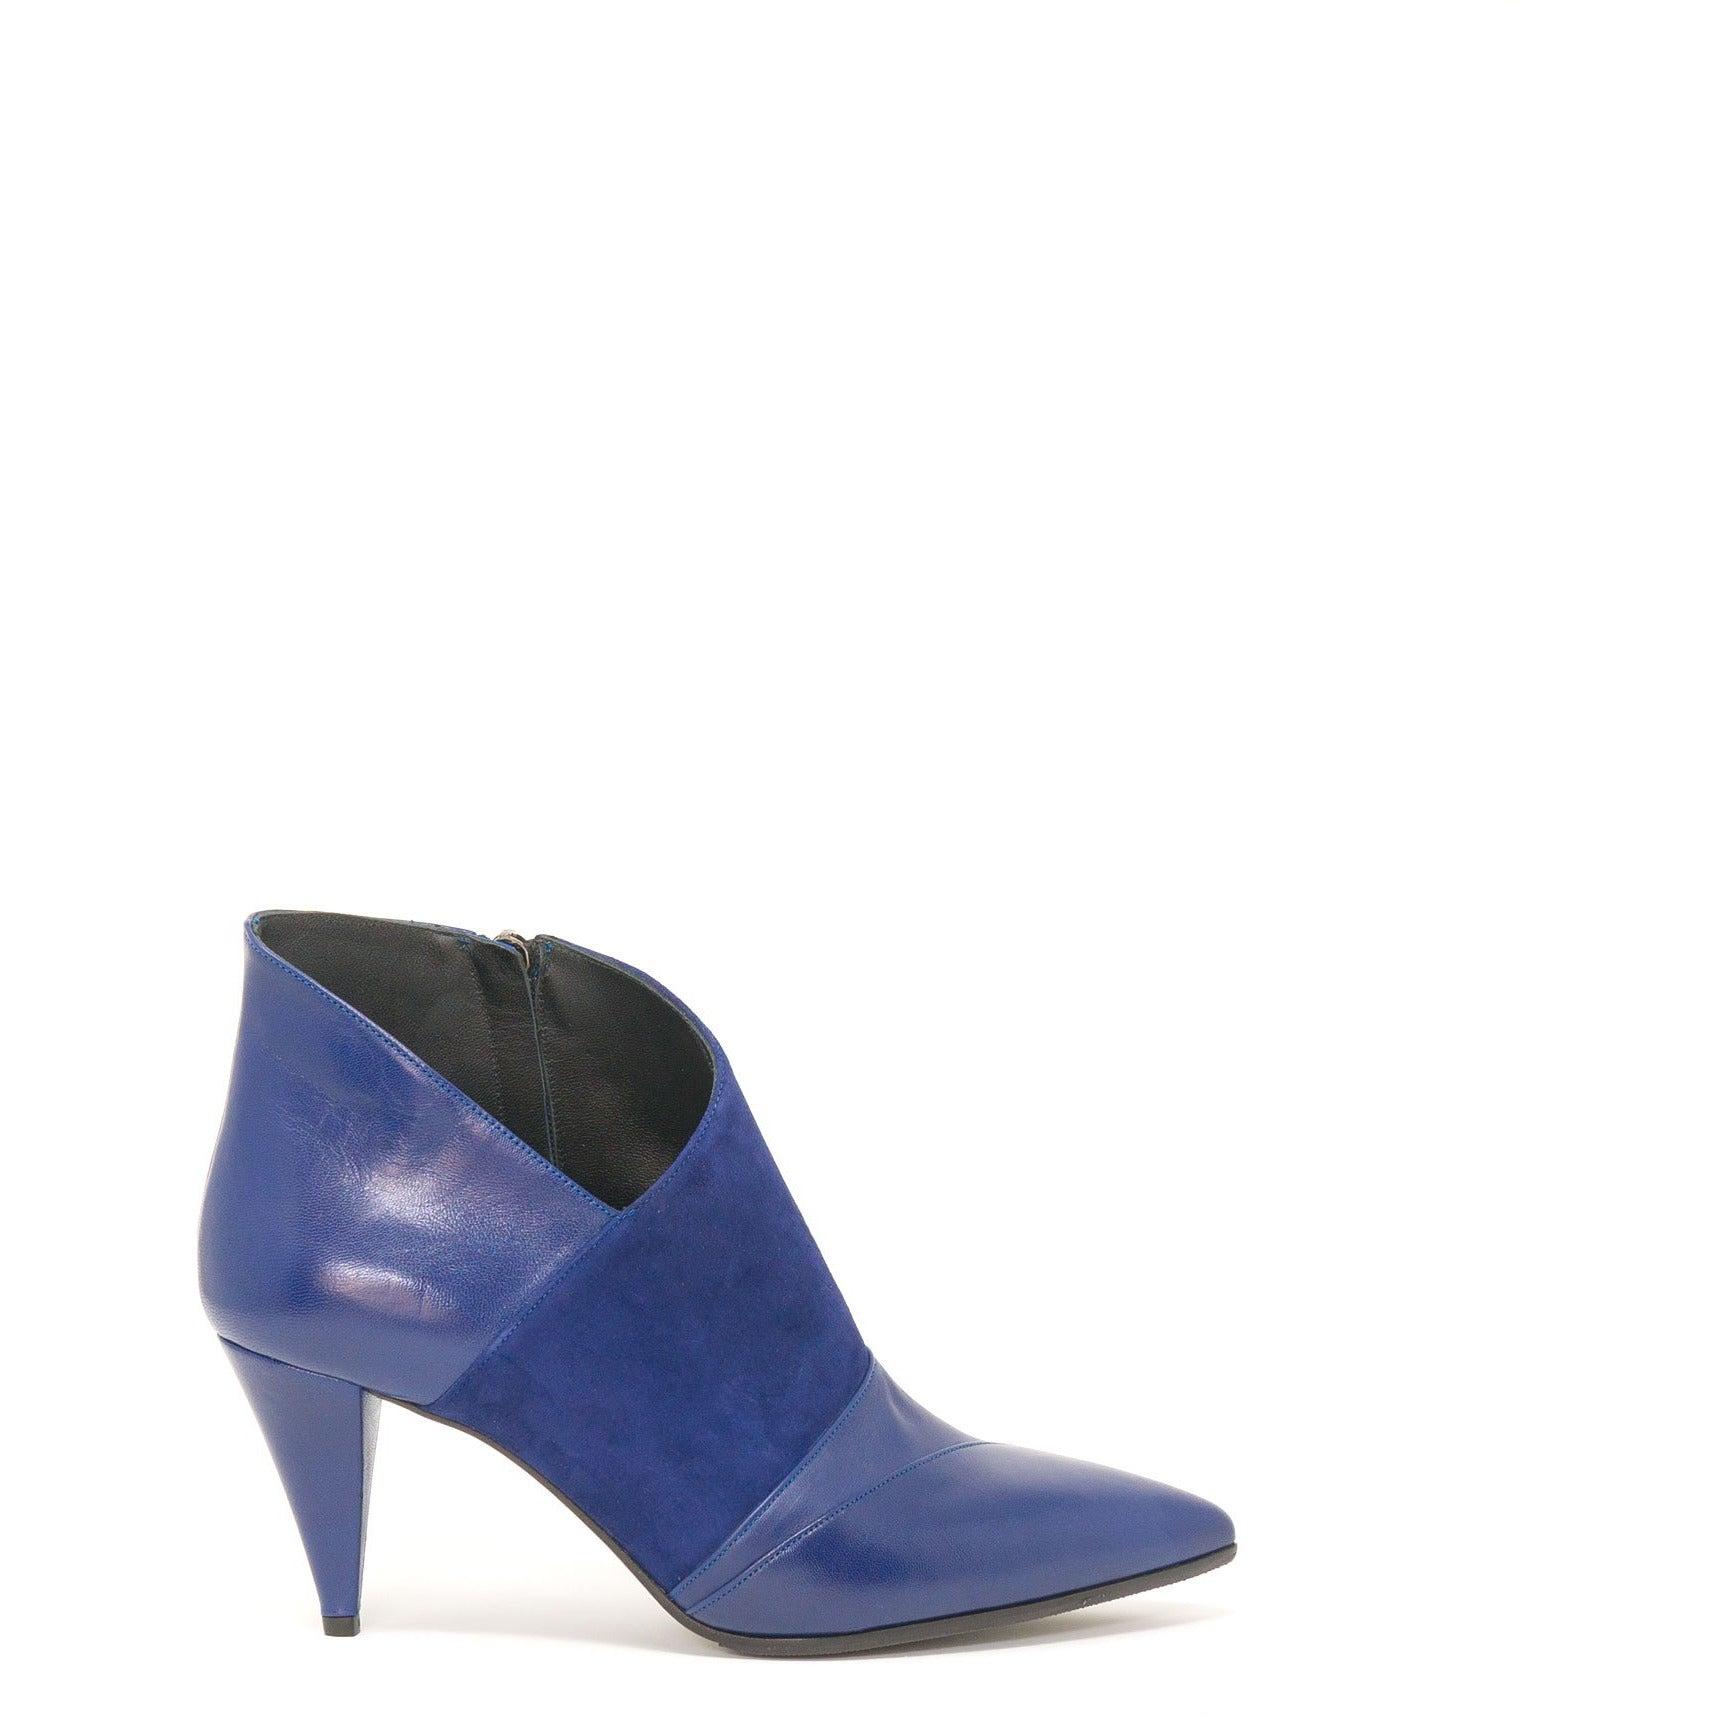 DDL4630 T70 Women Booties in Blue - Jennifer Tattanelli